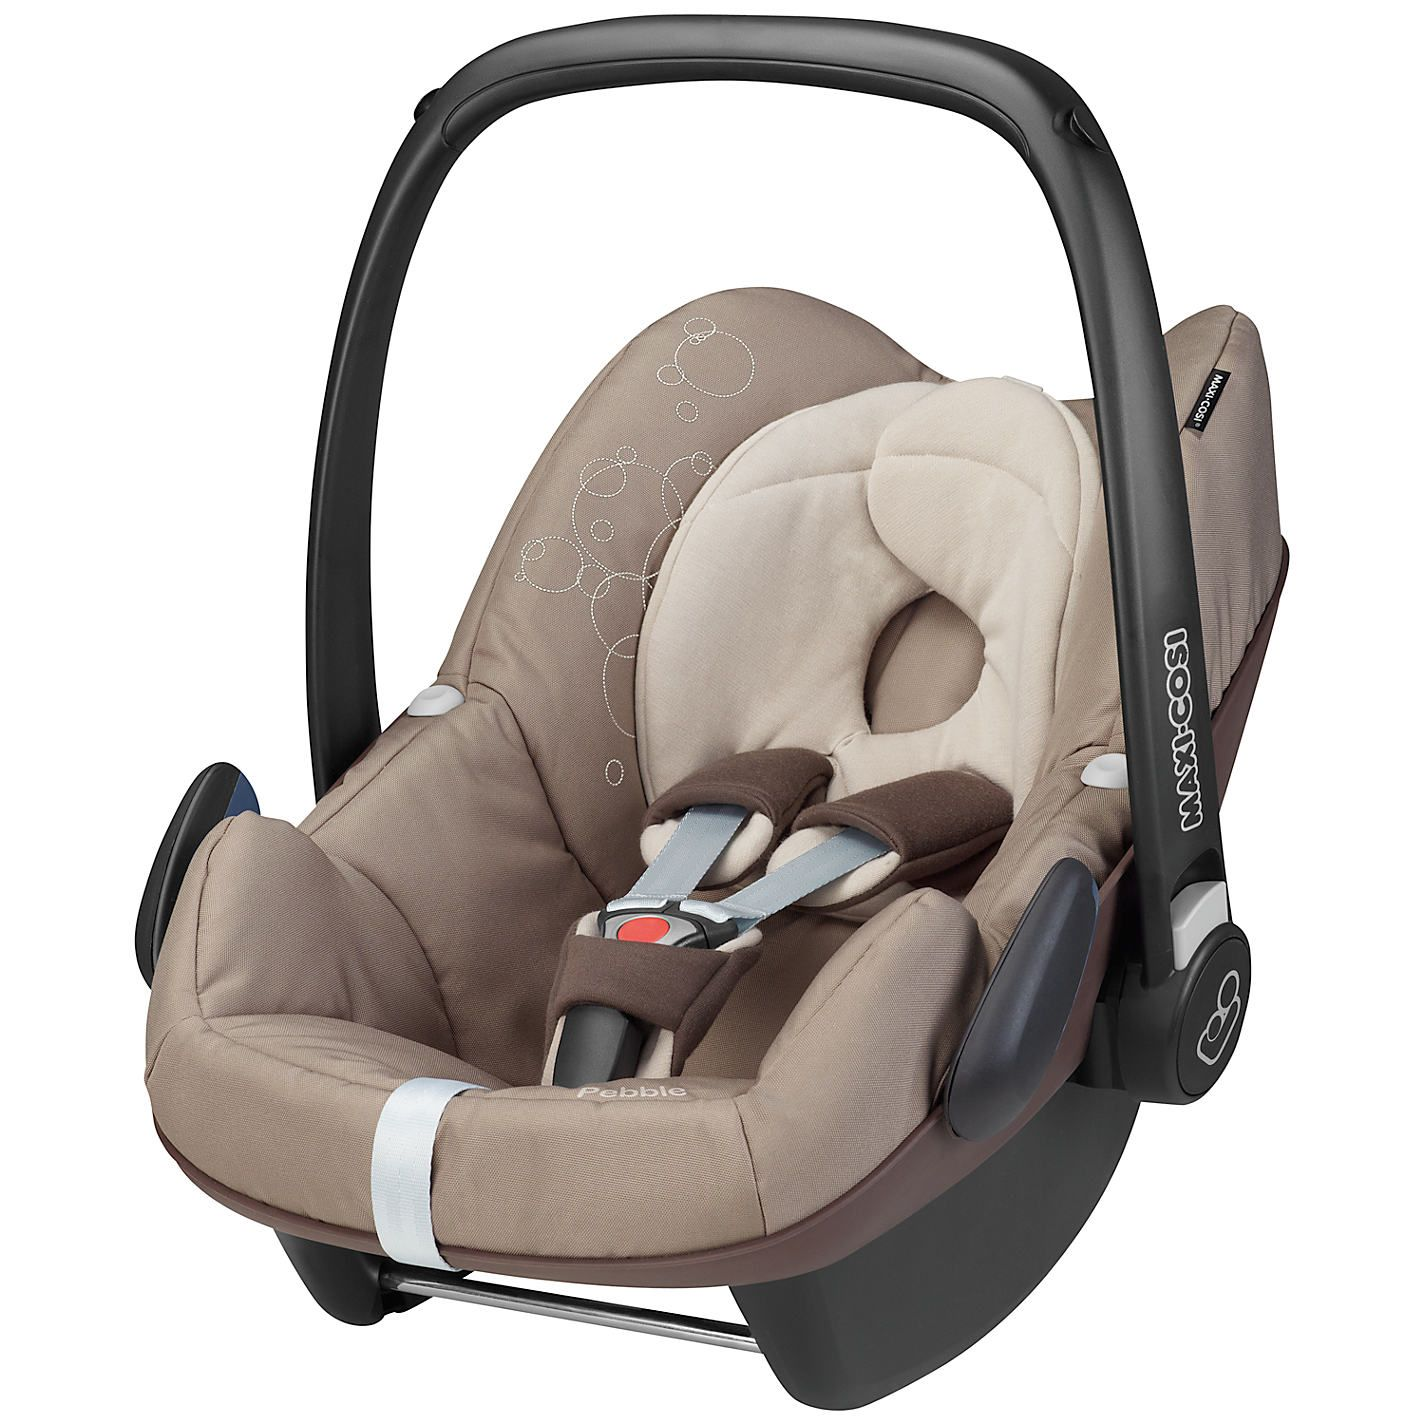 We love our Maxi Cosi Pebble car seat in Walnut Brown